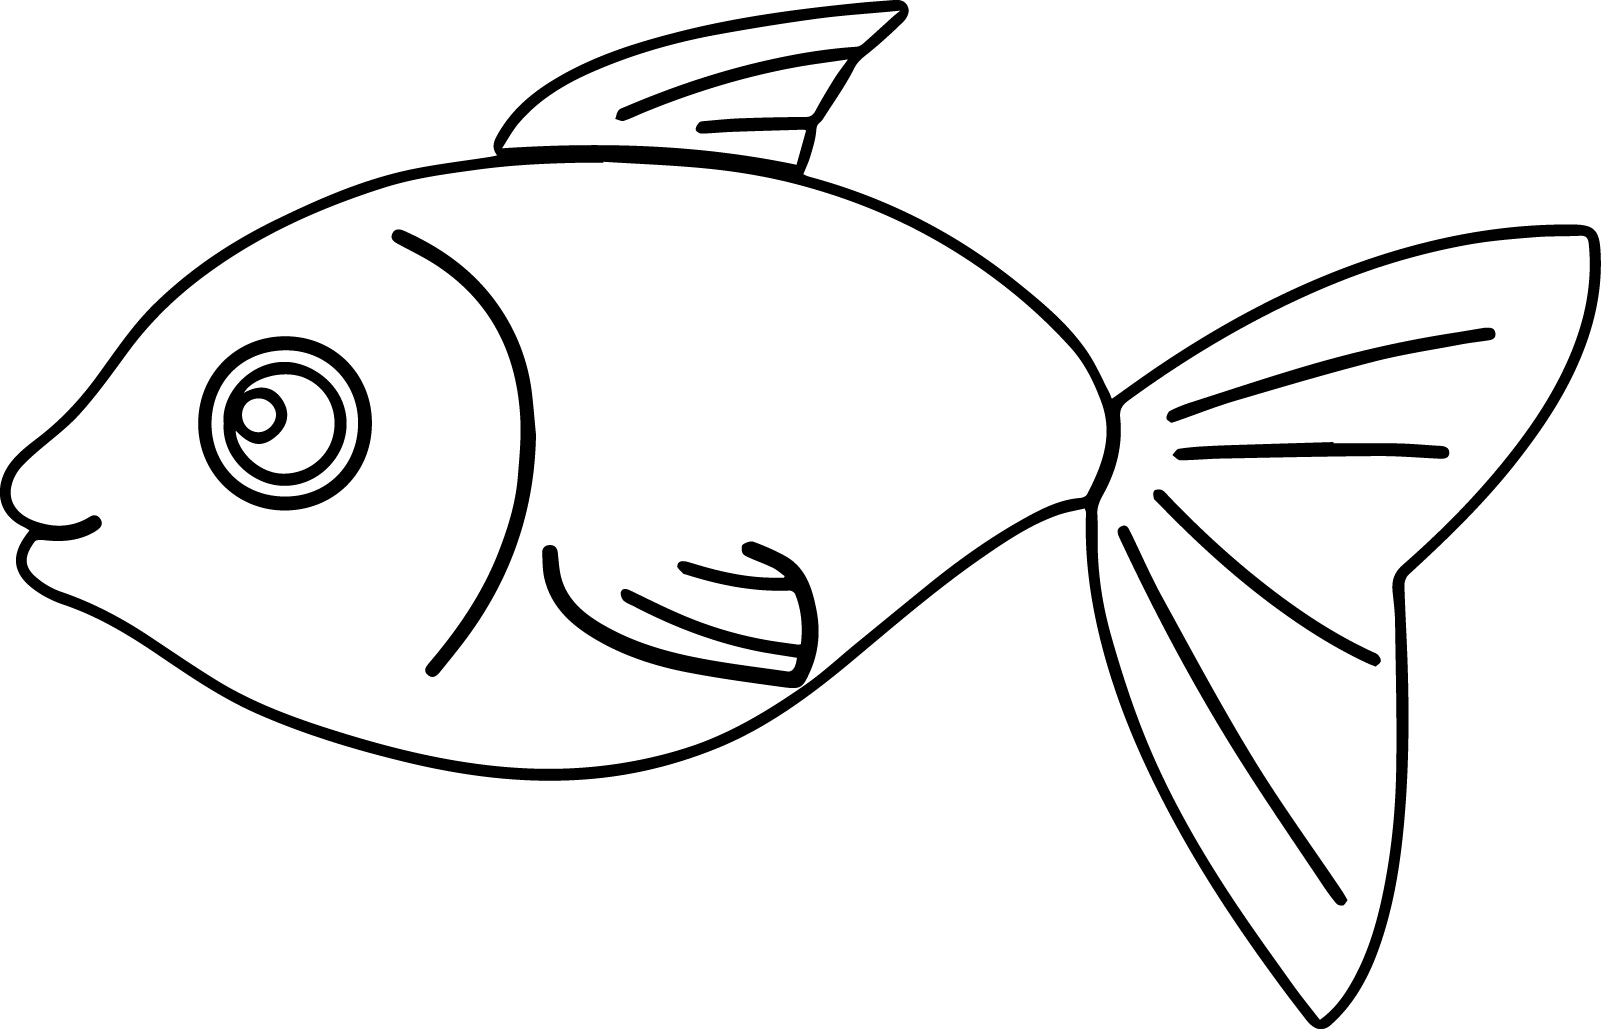 Colouring Worksheet Of Fish